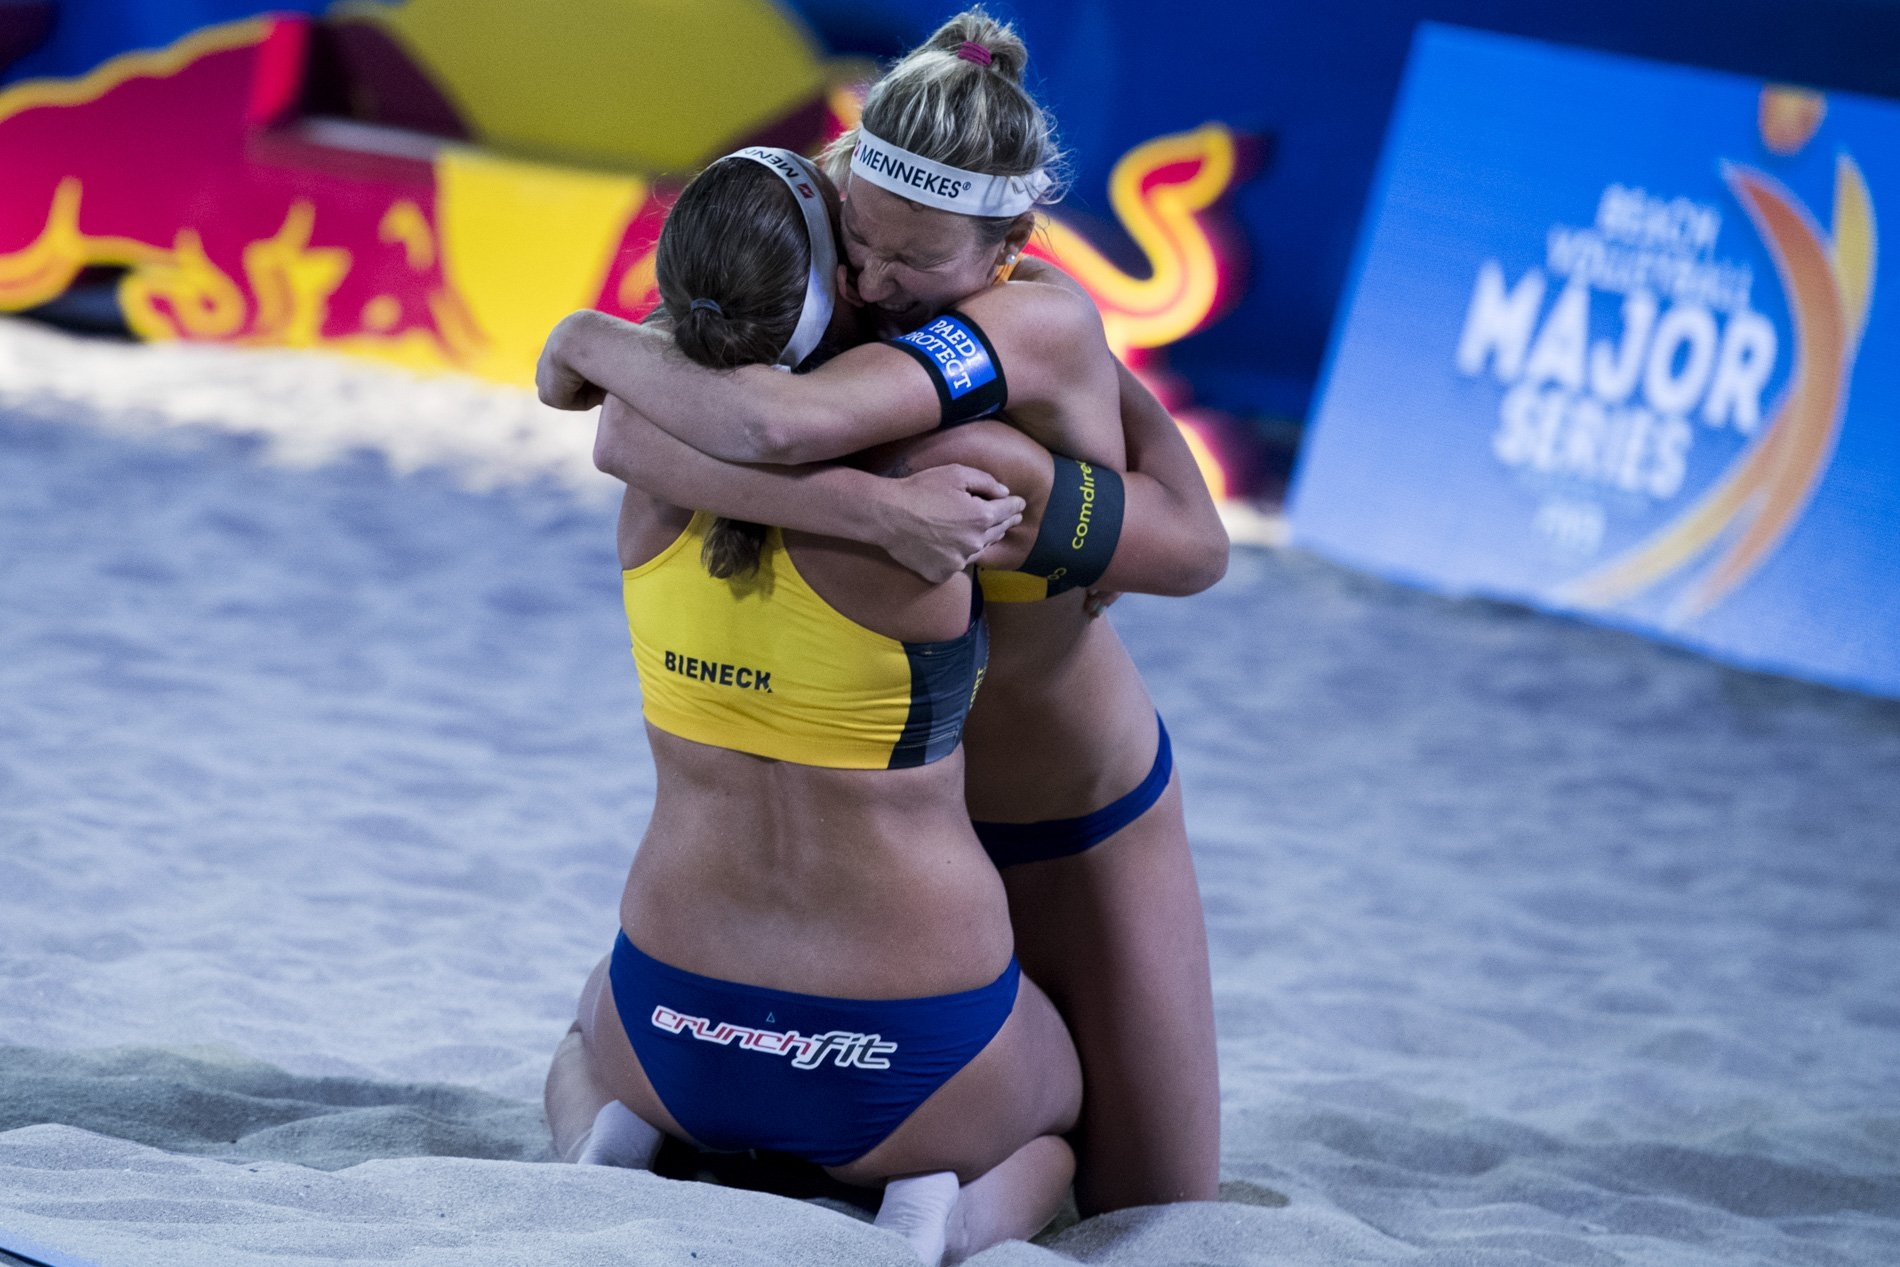 Bieneck and Schneider will compete in their first Beach Major Series semifinal